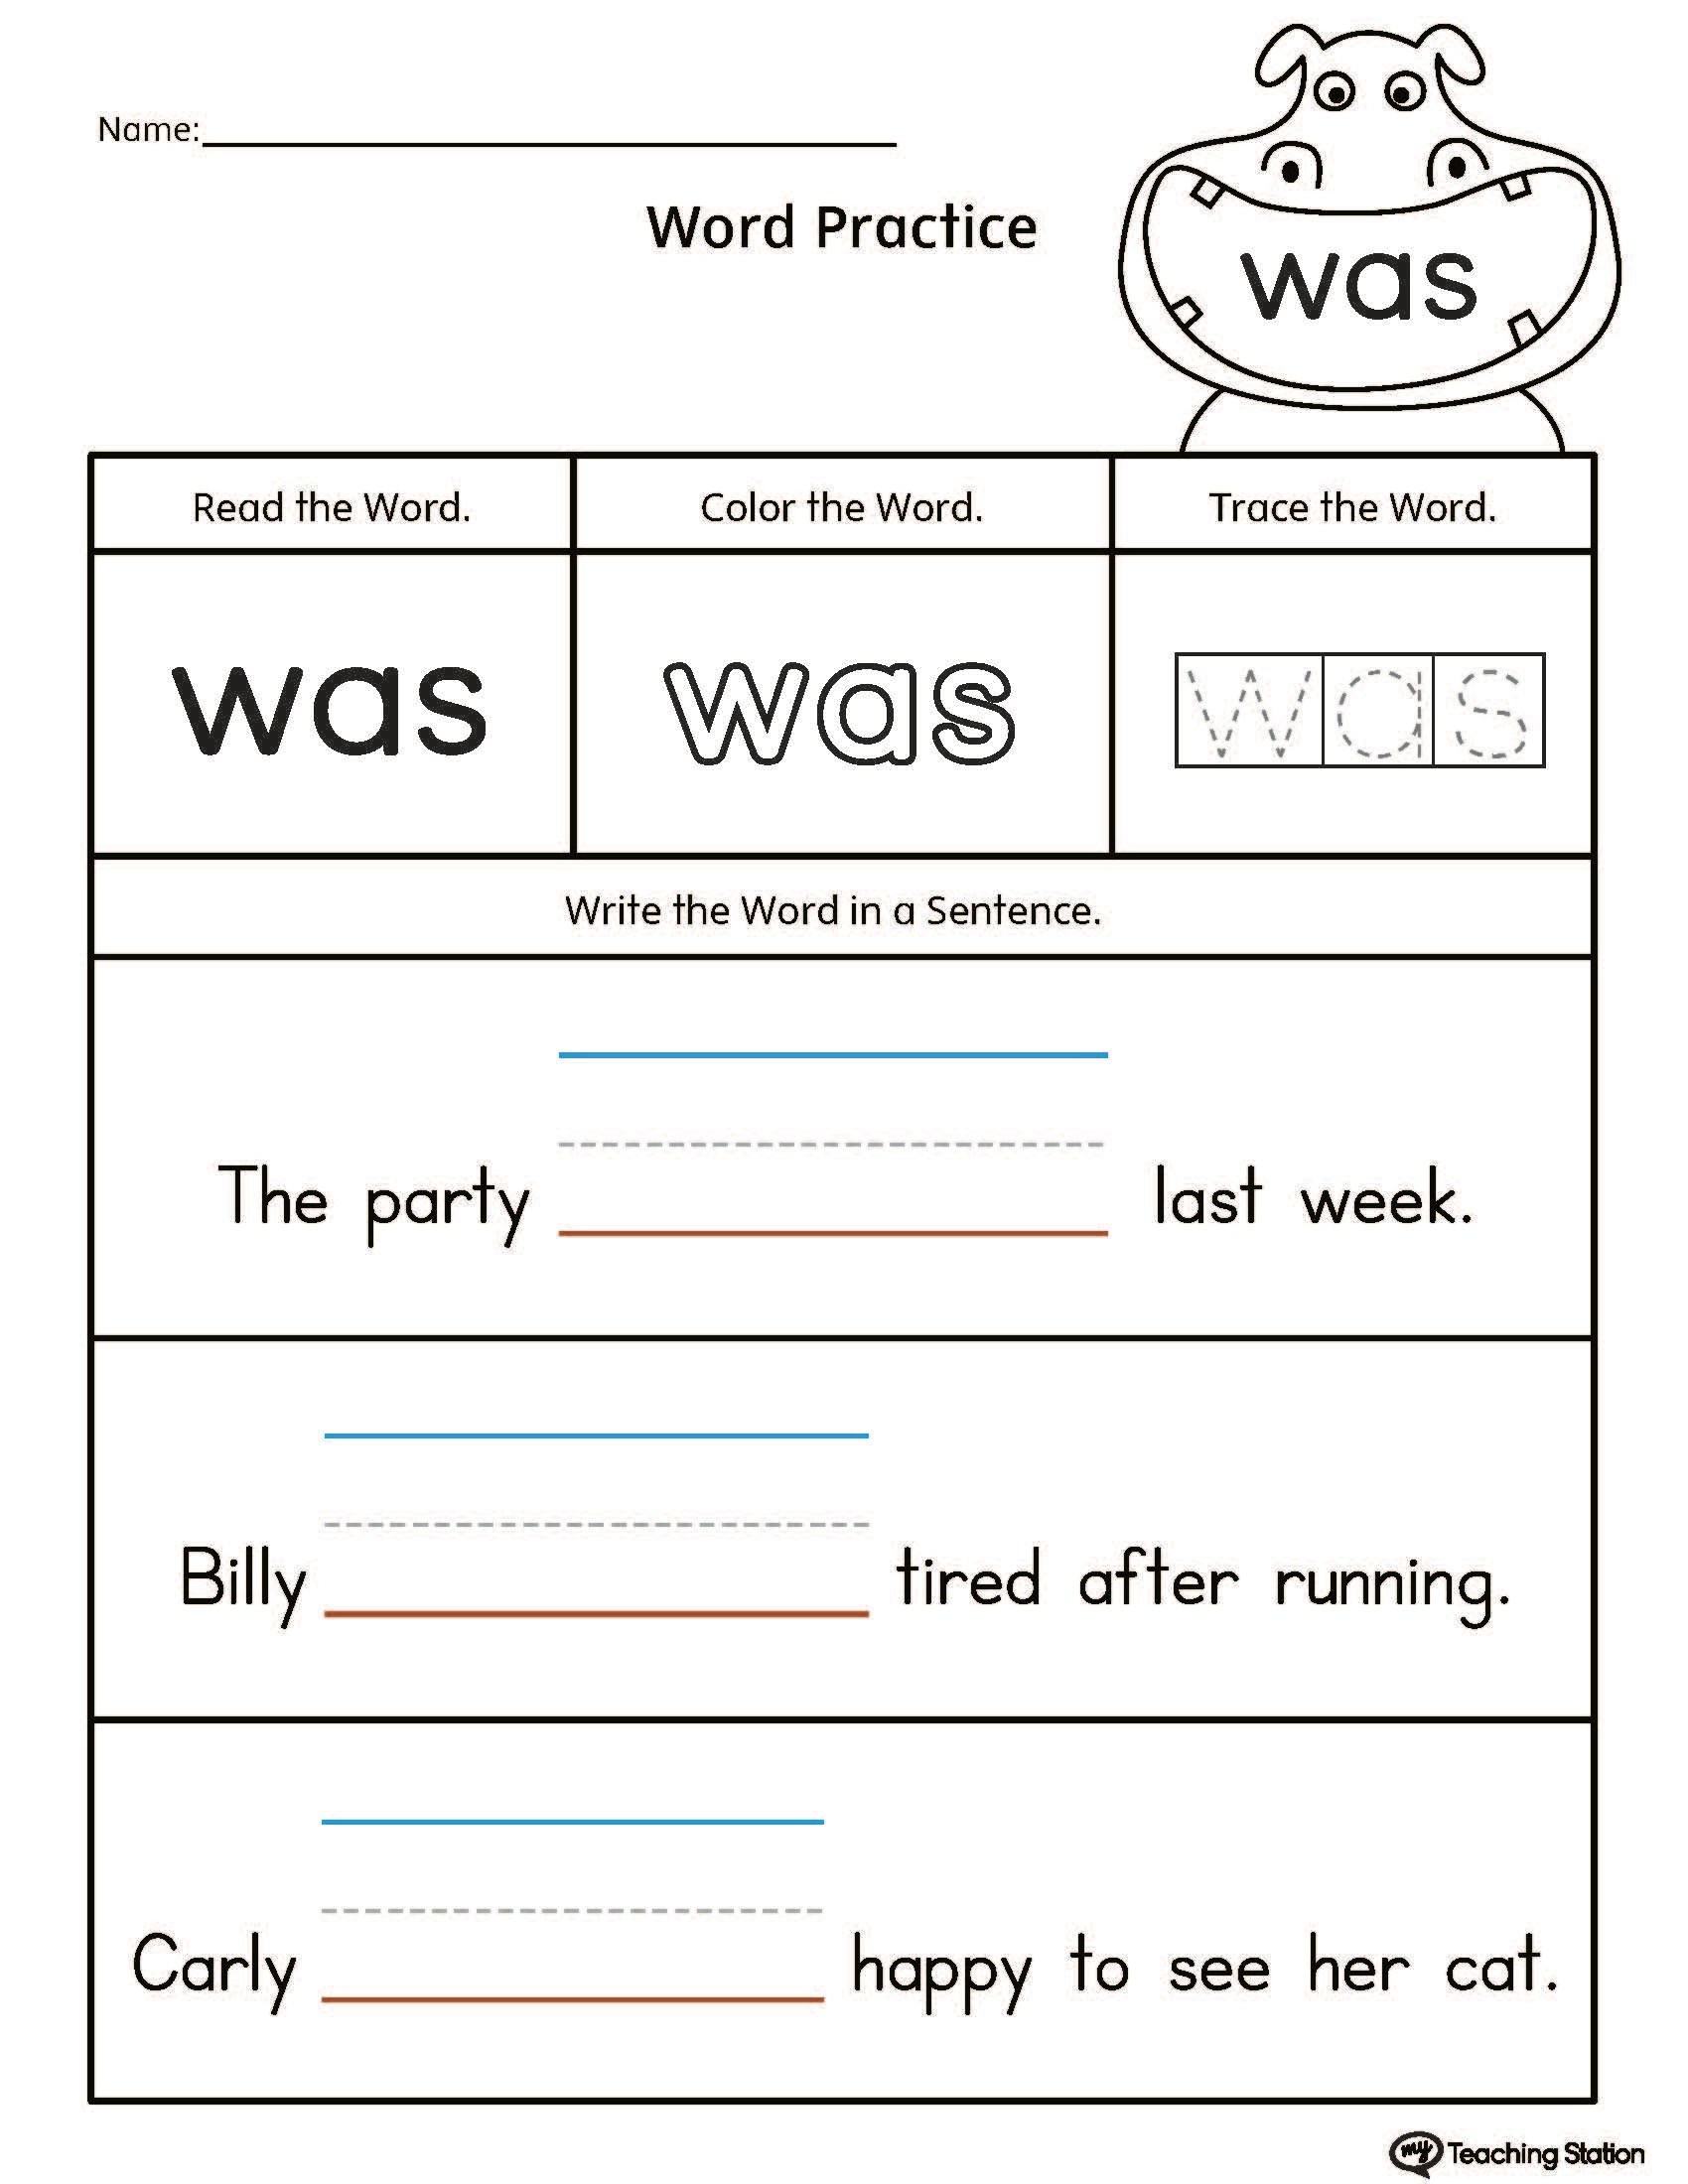 Sigt Word Worksheet